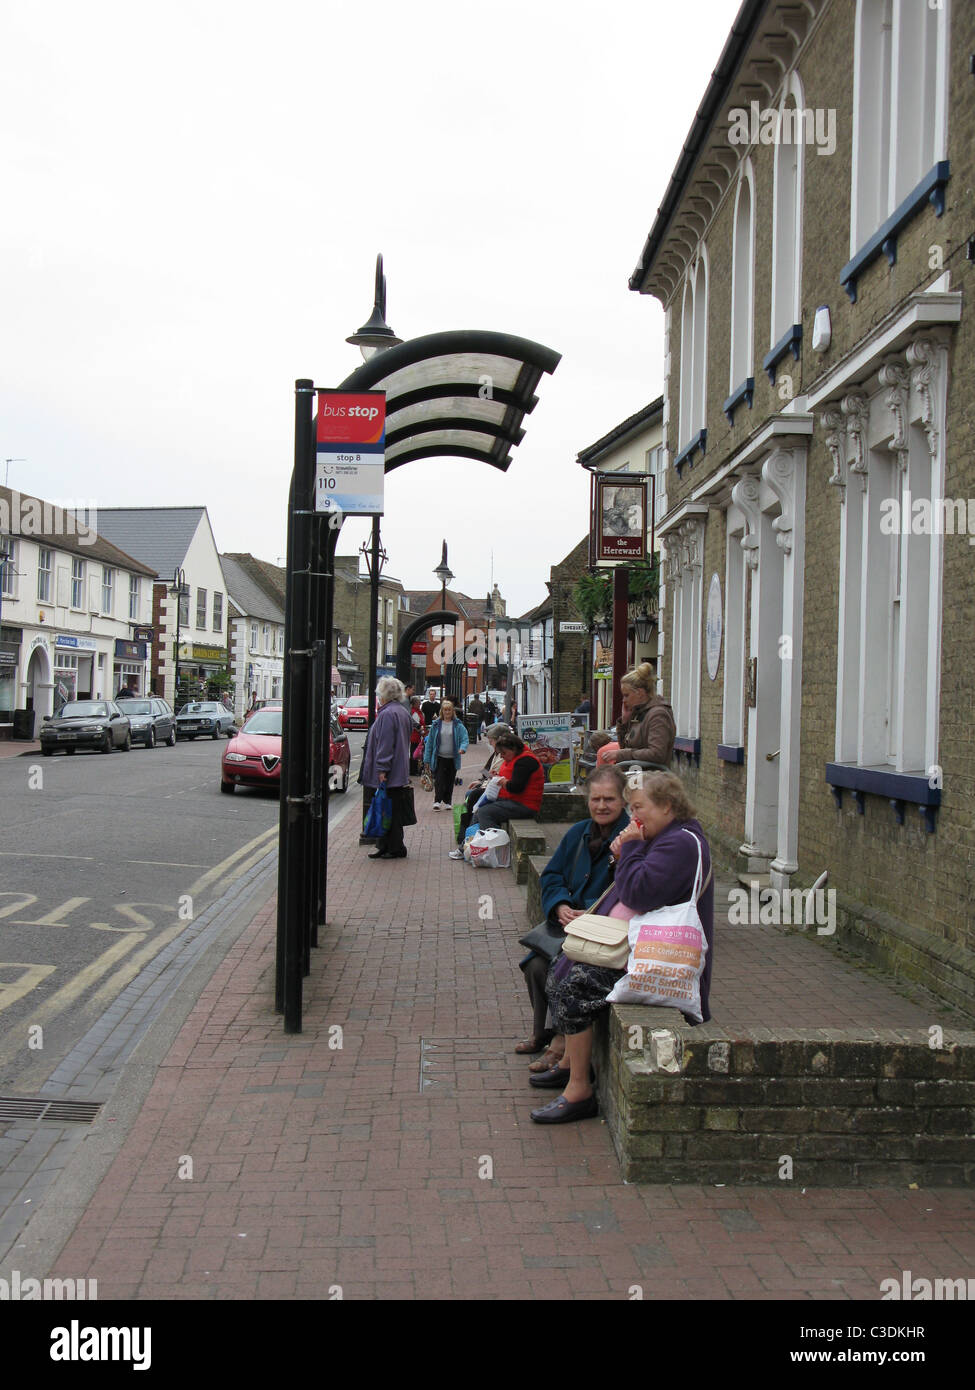 Waiting for a bus, Market Street, Ely - Stock Image